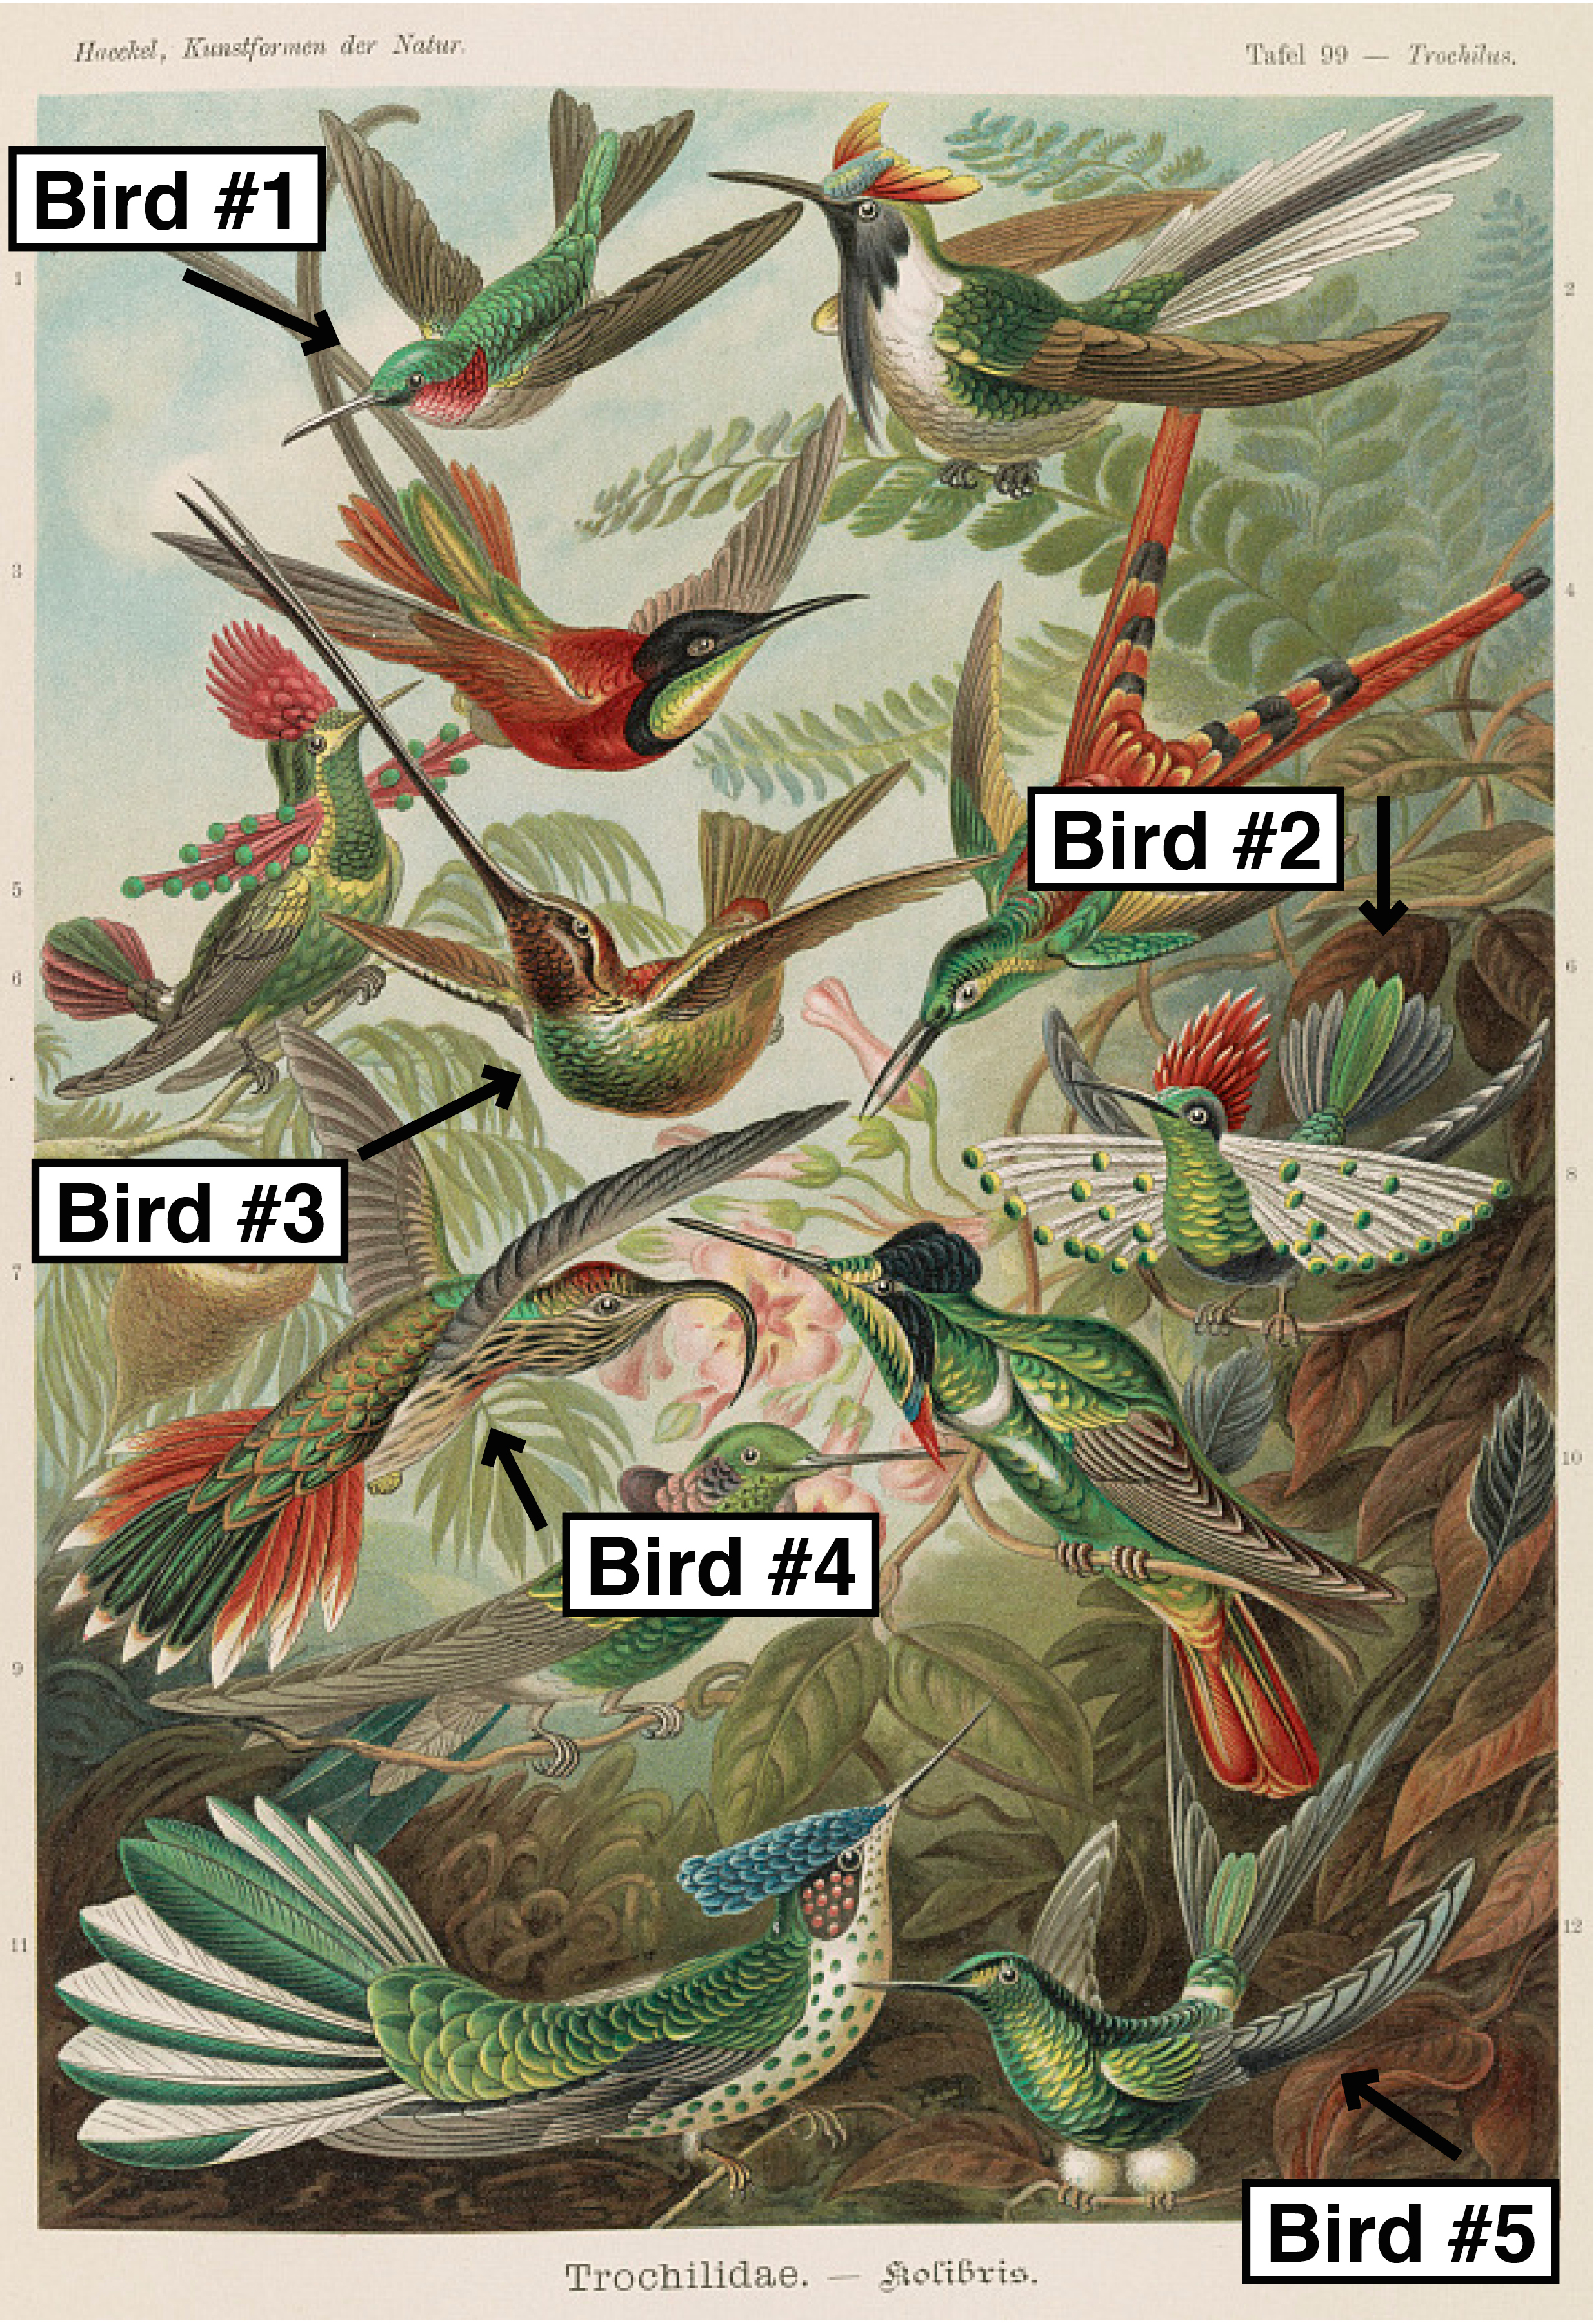 Trochilidae illustration with labels